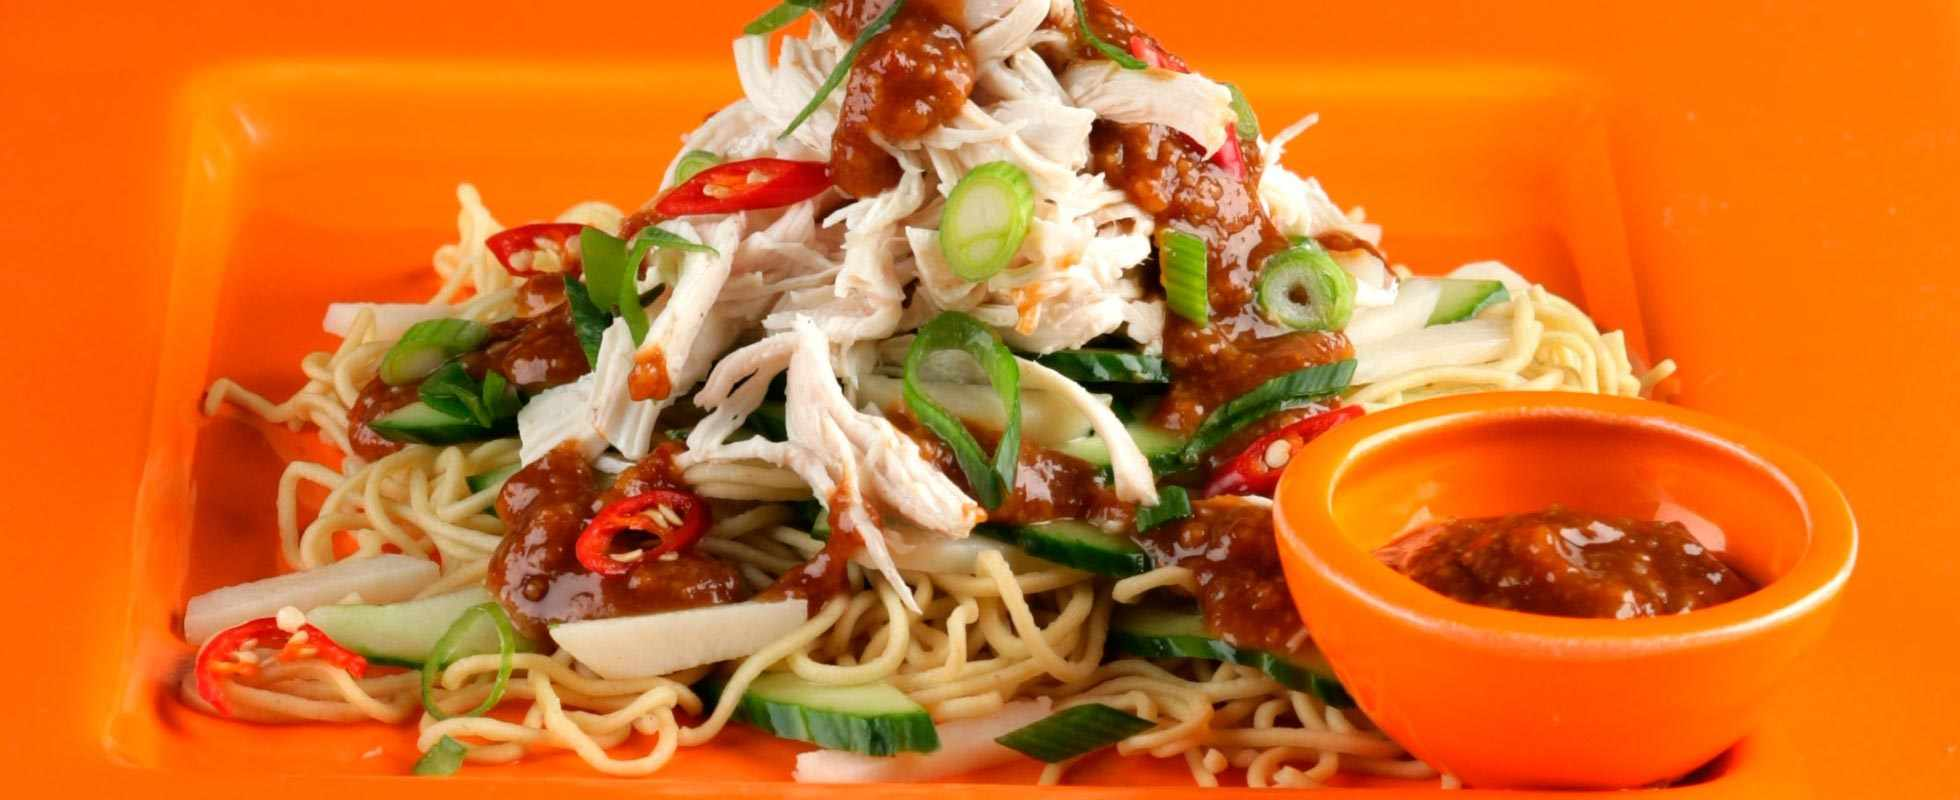 Spicy peanut noodles with chicken and water chestnuts